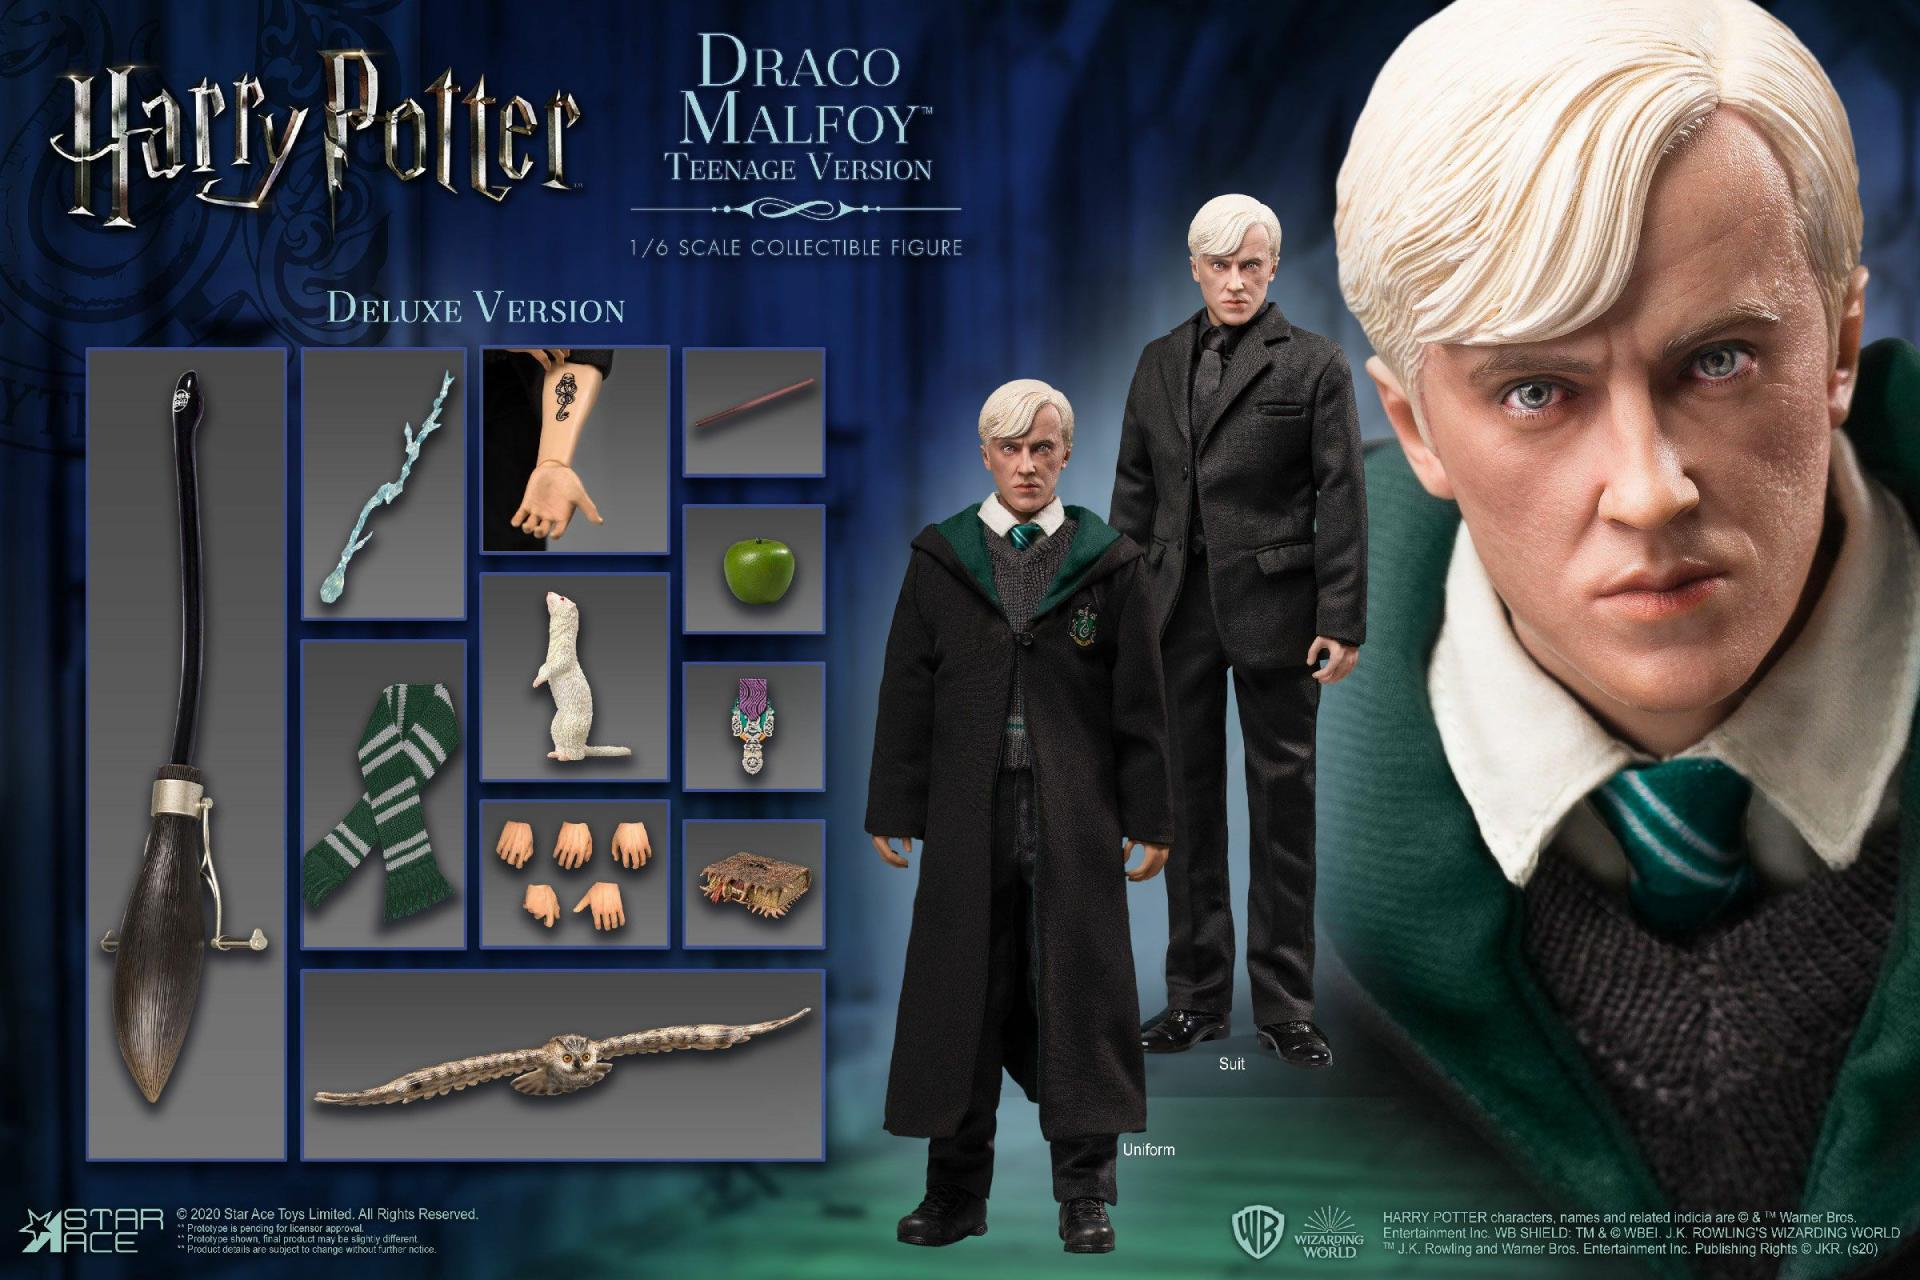 Harry potter my favourite movie figurine 16 draco malfoy teenager deluxe version 26 cm 1